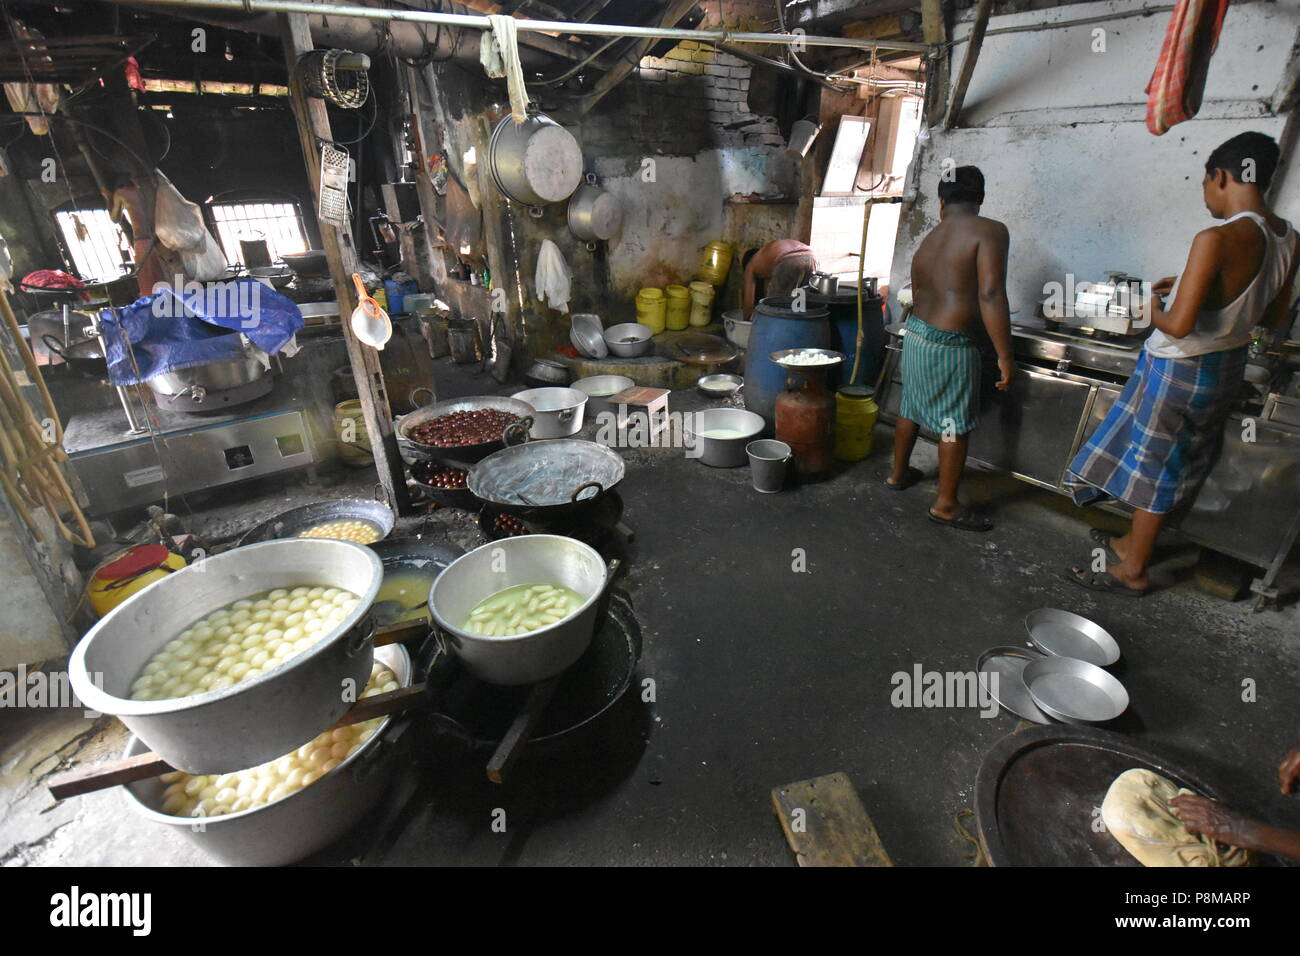 Shitala Mistanna Bhandar (A Bengali sweet house) kitchen, Batai zero-point, Amta, Howrah, West Bengal, India - Stock Image